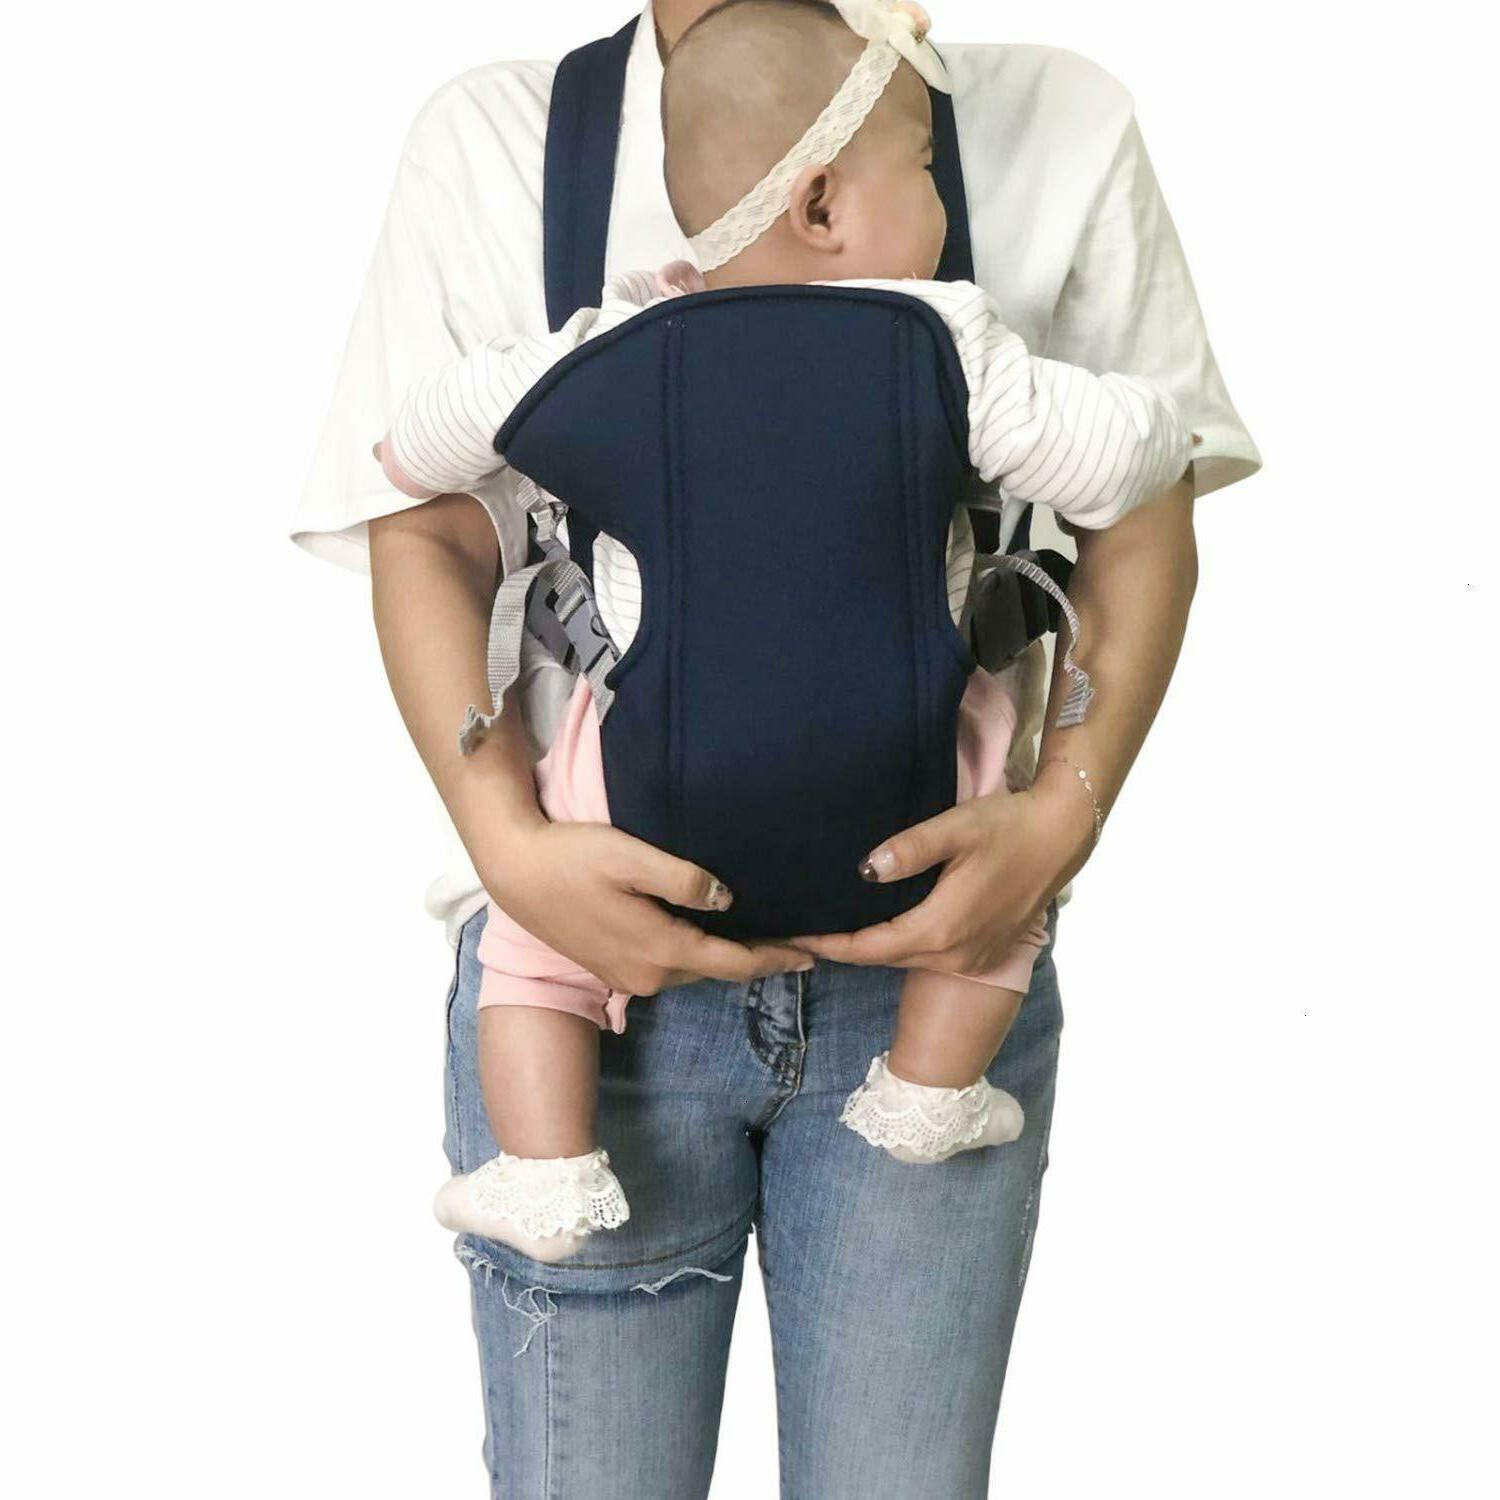 Baby Carrier Toddler Infant Holder